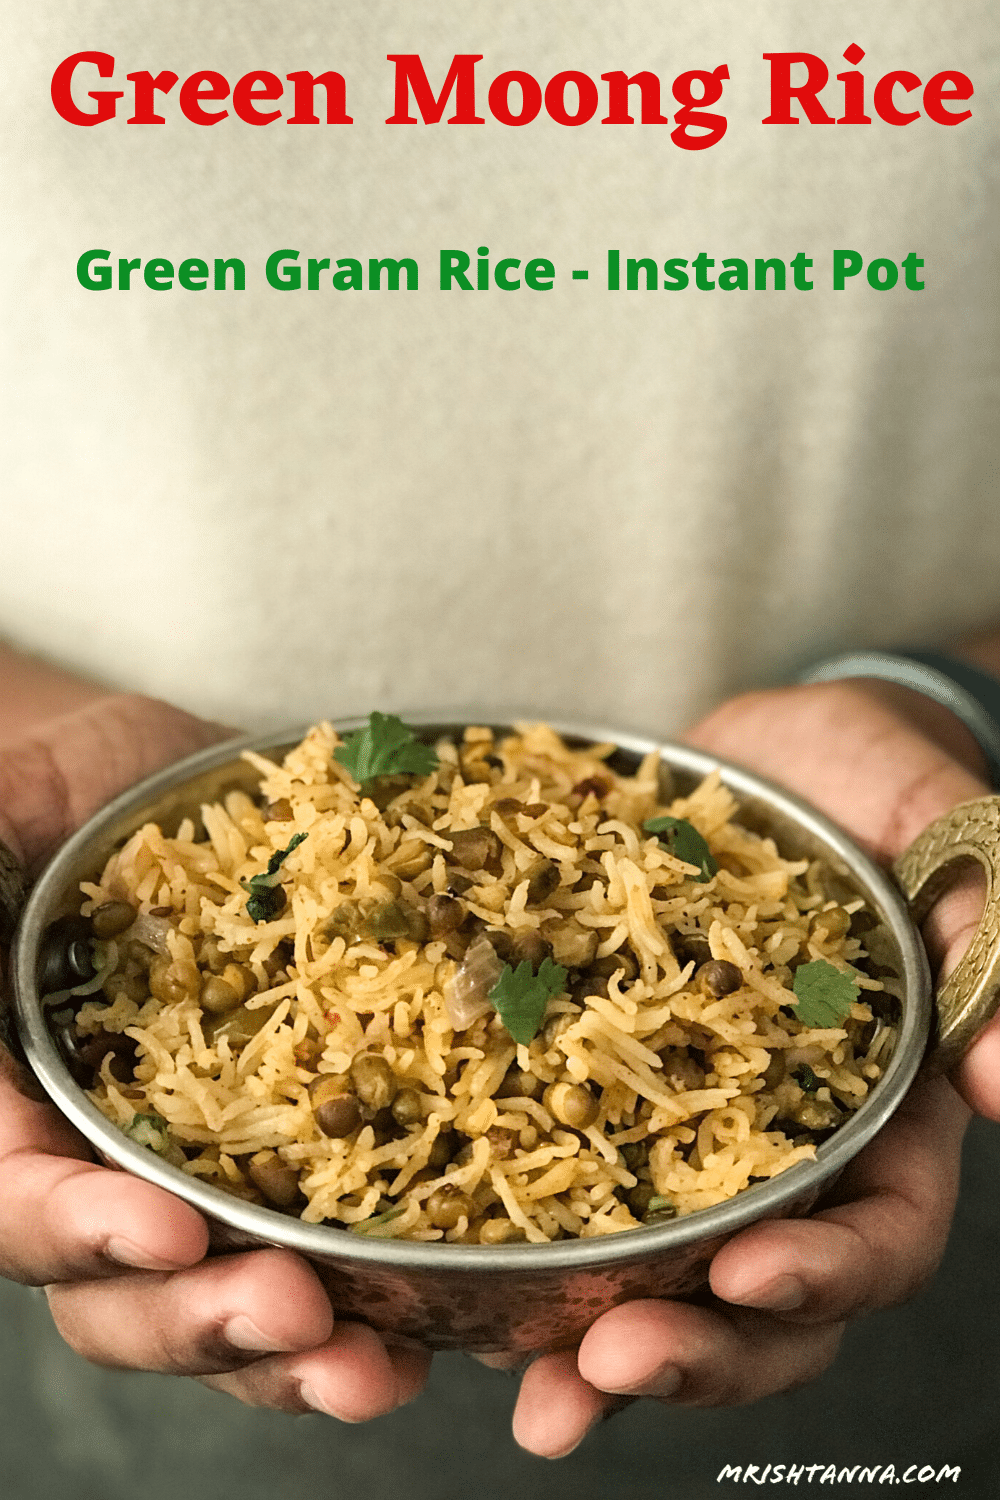 A person holding a bowl of green gram rice